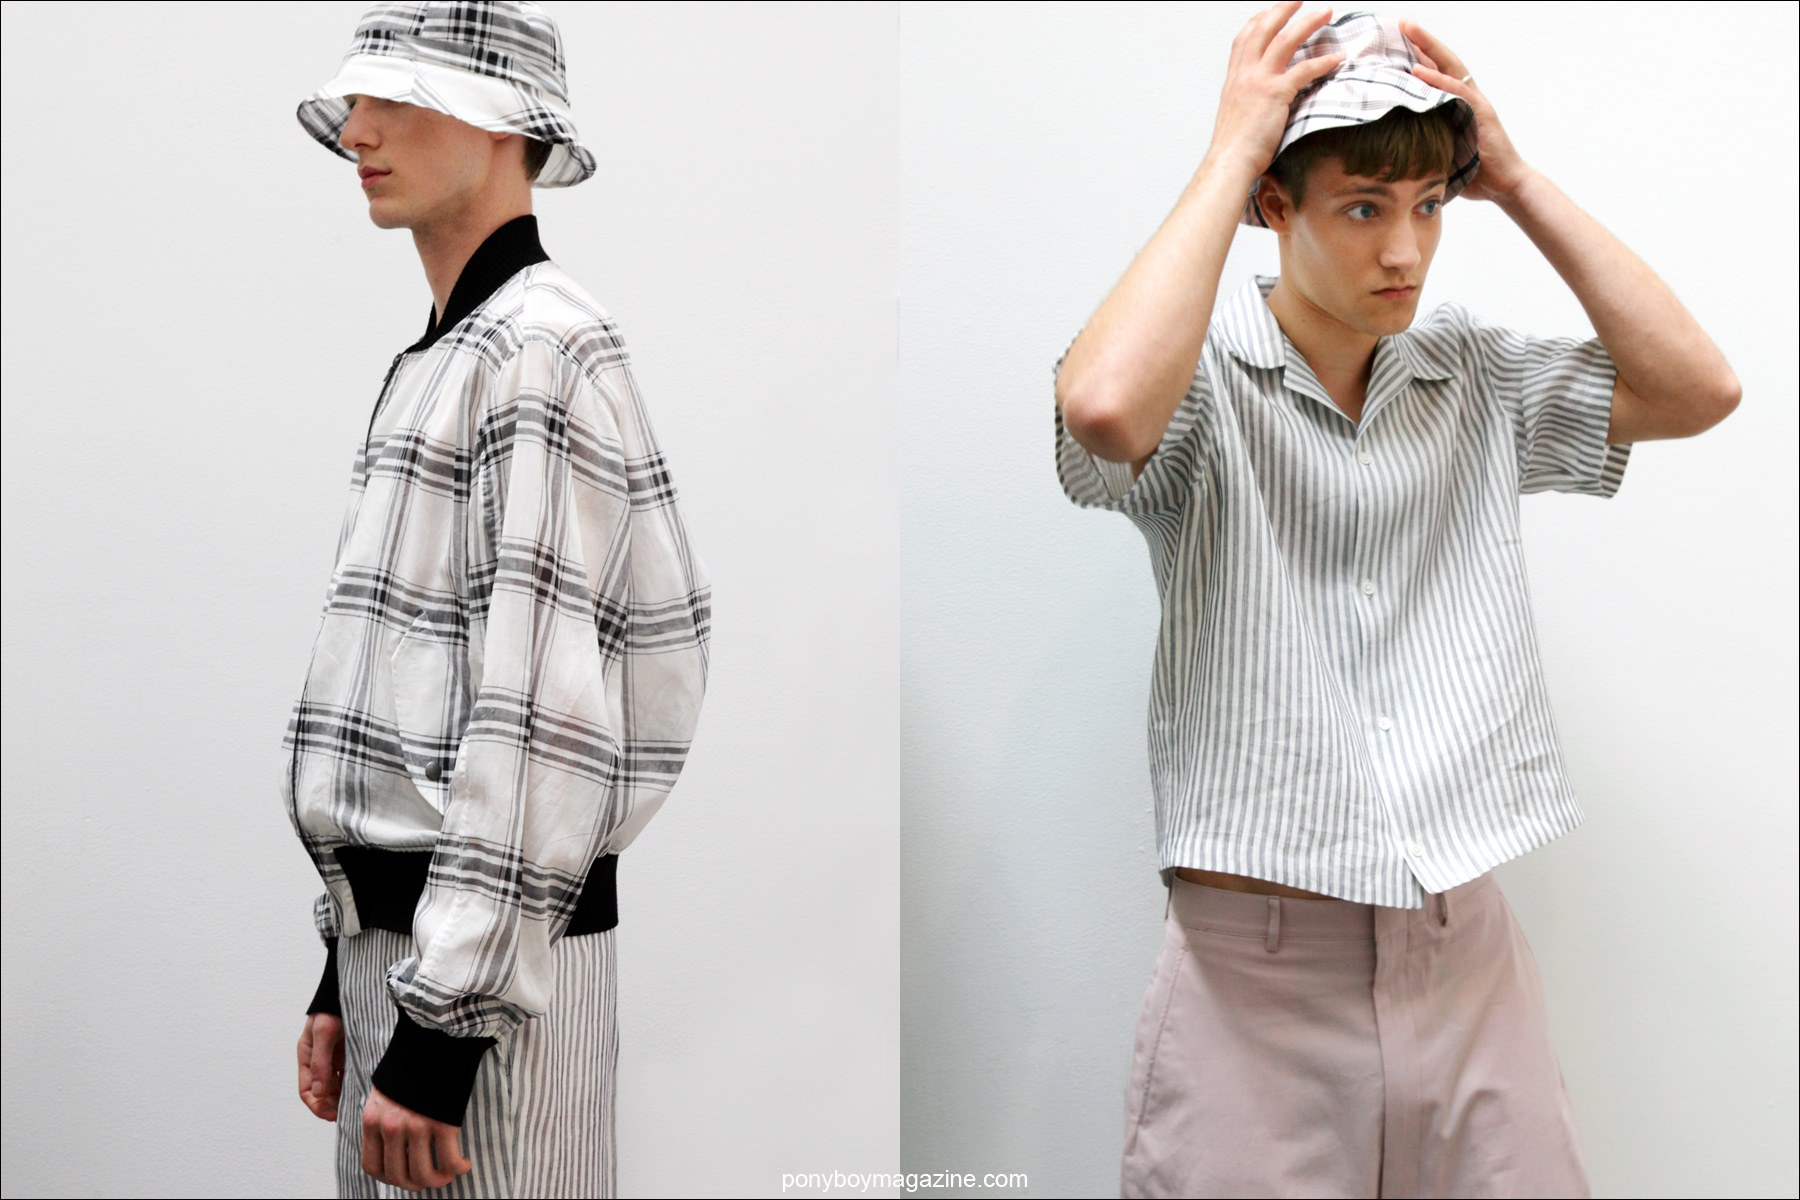 Male models in plaid bucket hats and spring clothing, designed by New York label Duckie Brown S/S15. Photos by Alexander Thompson for Ponyboy Magazine.